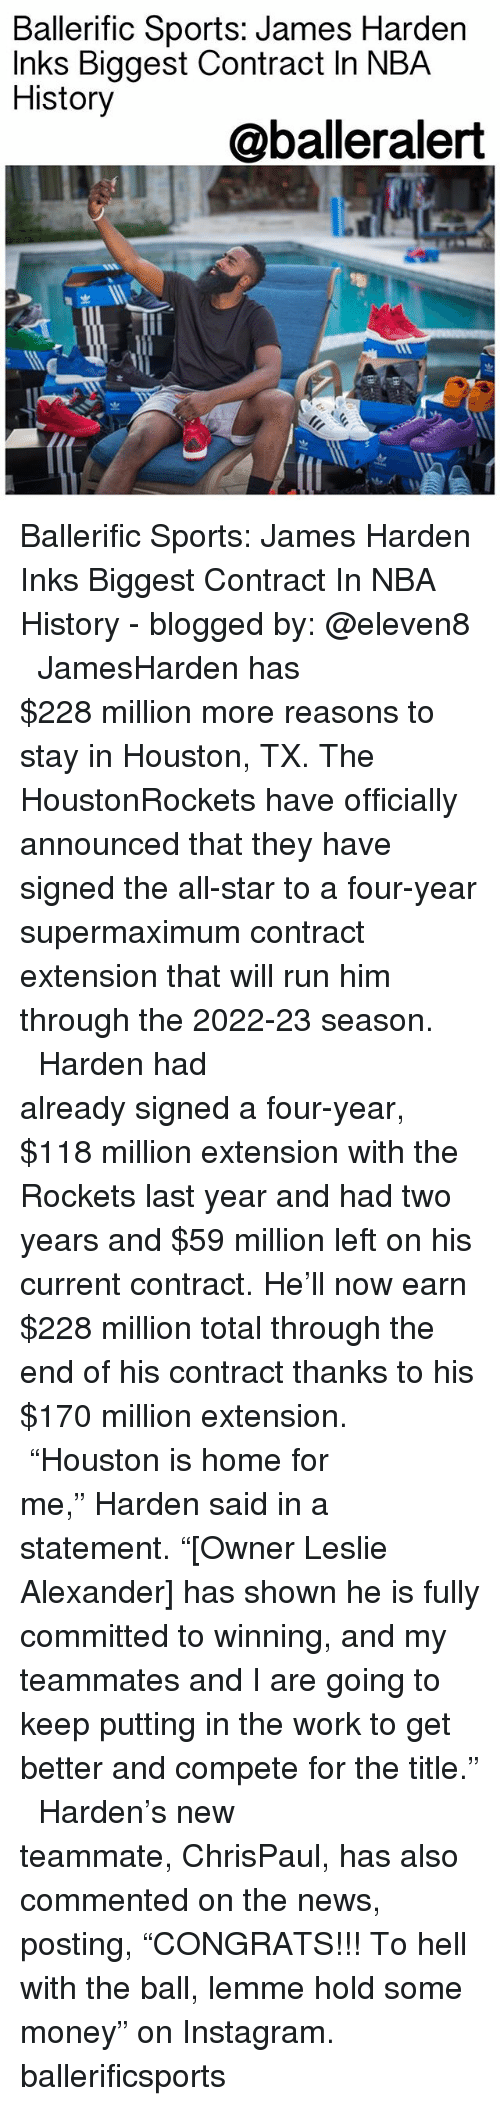 """Jamesness: Ballerific Sports: James Harden  Inks Biggest Contract In NBA  History  @balleralert  渹ㄓ Ballerific Sports: James Harden Inks Biggest Contract In NBA History - blogged by: @eleven8 ⠀⠀⠀⠀⠀⠀⠀⠀⠀ ⠀⠀⠀⠀⠀⠀⠀⠀⠀ JamesHarden has $228 million more reasons to stay in Houston, TX. The HoustonRockets have officially announced that they have signed the all-star to a four-year supermaximum contract extension that will run him through the 2022-23 season. ⠀⠀⠀⠀⠀⠀⠀⠀⠀ ⠀⠀⠀⠀⠀⠀⠀⠀⠀ Harden had already signed a four-year, $118 million extension with the Rockets last year and had two years and $59 million left on his current contract. He'll now earn $228 million total through the end of his contract thanks to his $170 million extension. ⠀⠀⠀⠀⠀⠀⠀⠀⠀ ⠀⠀⠀⠀⠀⠀⠀⠀⠀ """"Houston is home for me,"""" Harden said in a statement. """"[Owner Leslie Alexander] has shown he is fully committed to winning, and my teammates and I are going to keep putting in the work to get better and compete for the title."""" ⠀⠀⠀⠀⠀⠀⠀⠀⠀ ⠀⠀⠀⠀⠀⠀⠀⠀⠀ Harden's new teammate, ChrisPaul, has also commented on the news, posting, """"CONGRATS!!! To hell with the ball, lemme hold some money"""" on Instagram. ballerificsports"""